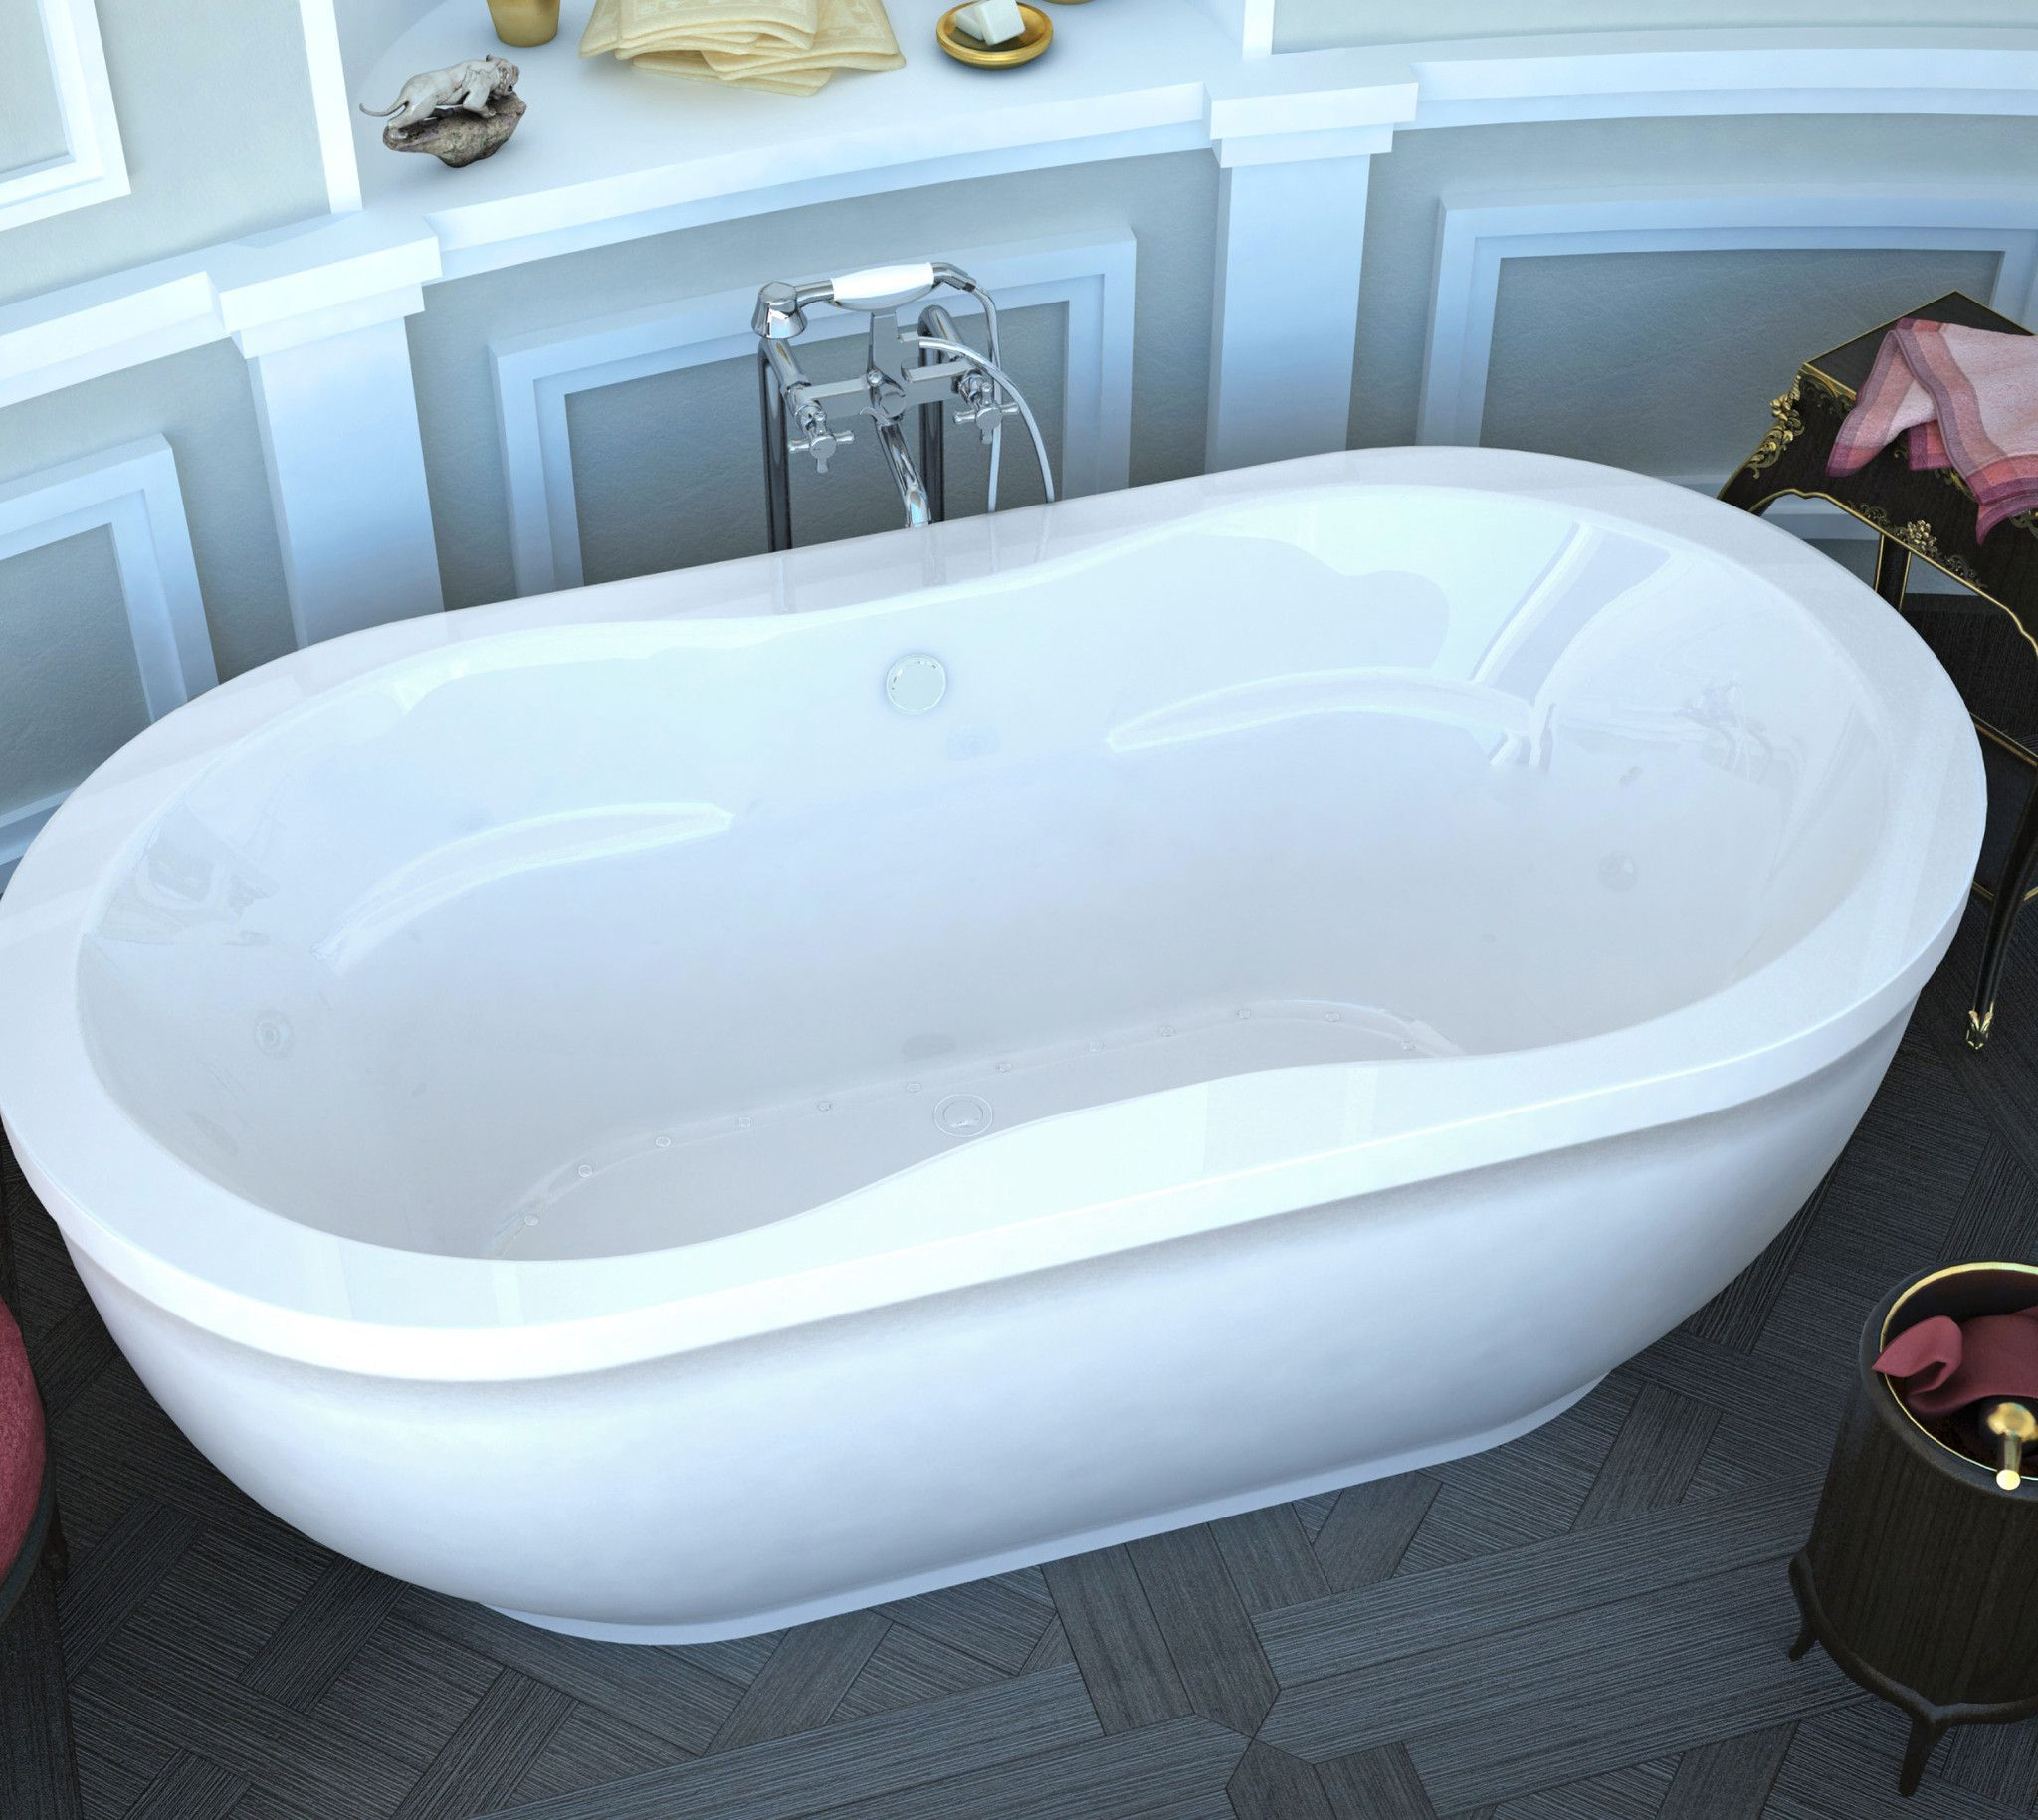 Belle 36x60-in. Oval Air & Whirlpool Jetted Bathtub - White   Drop ...